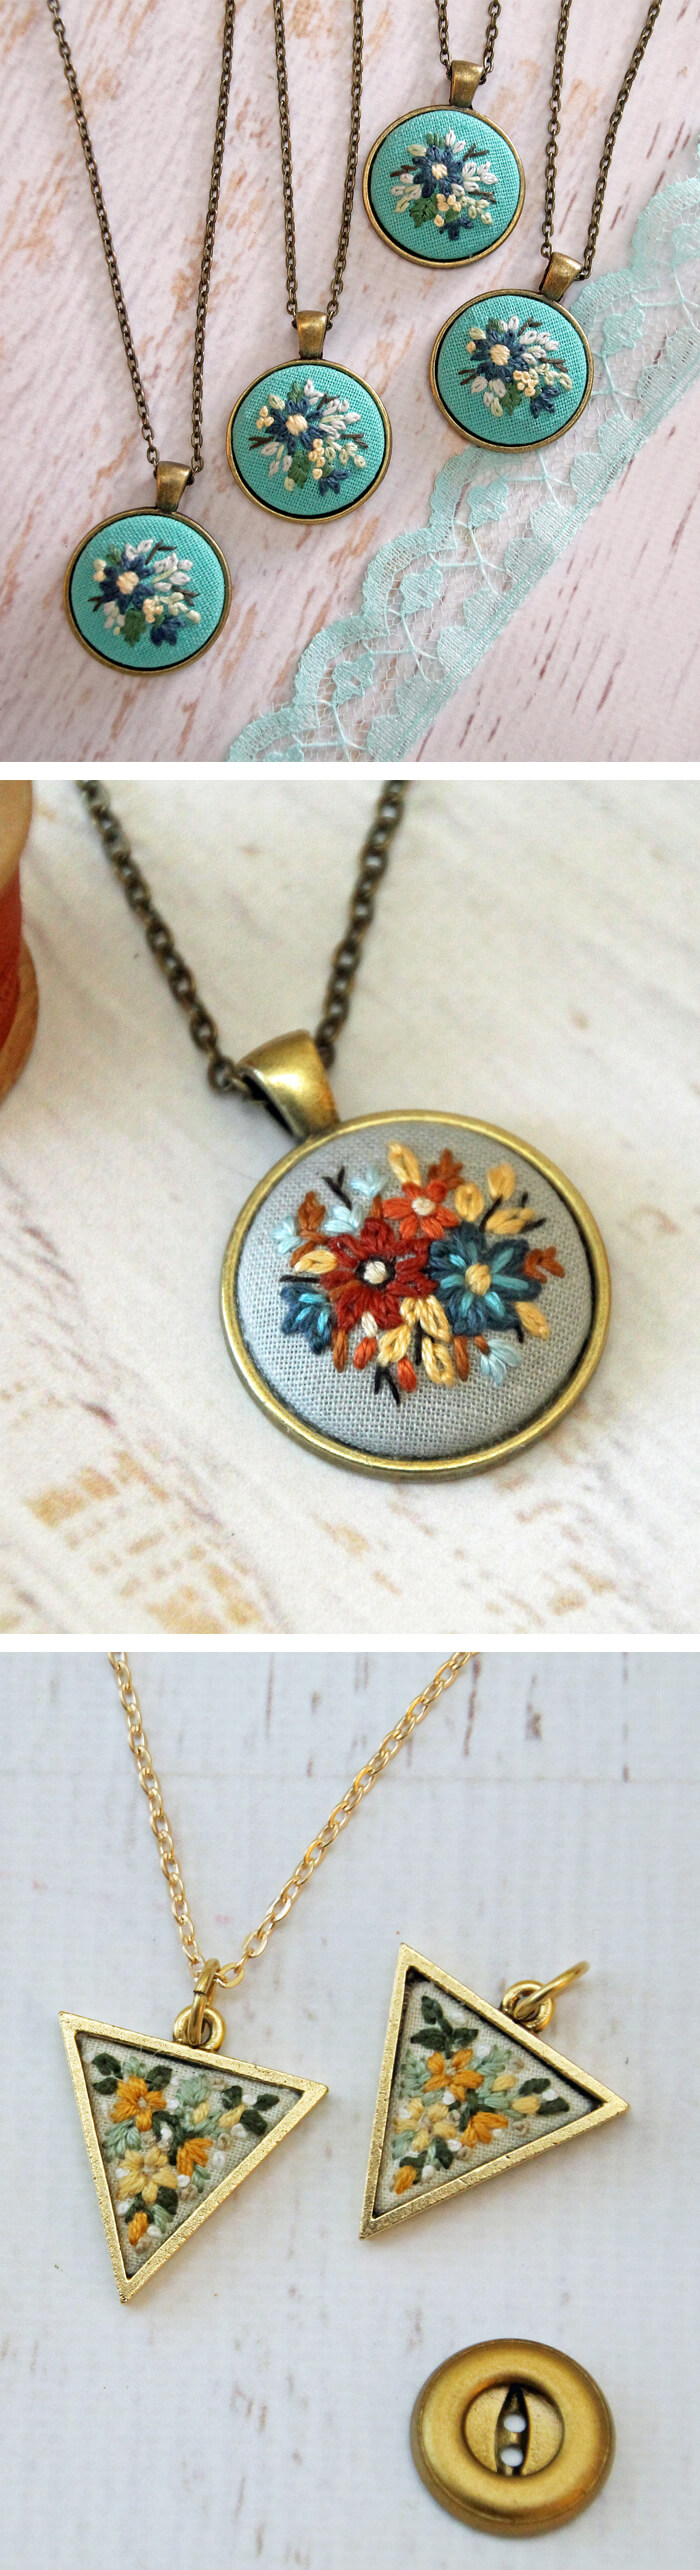 Embroidered necklaces by Itty Bitty Bunnies